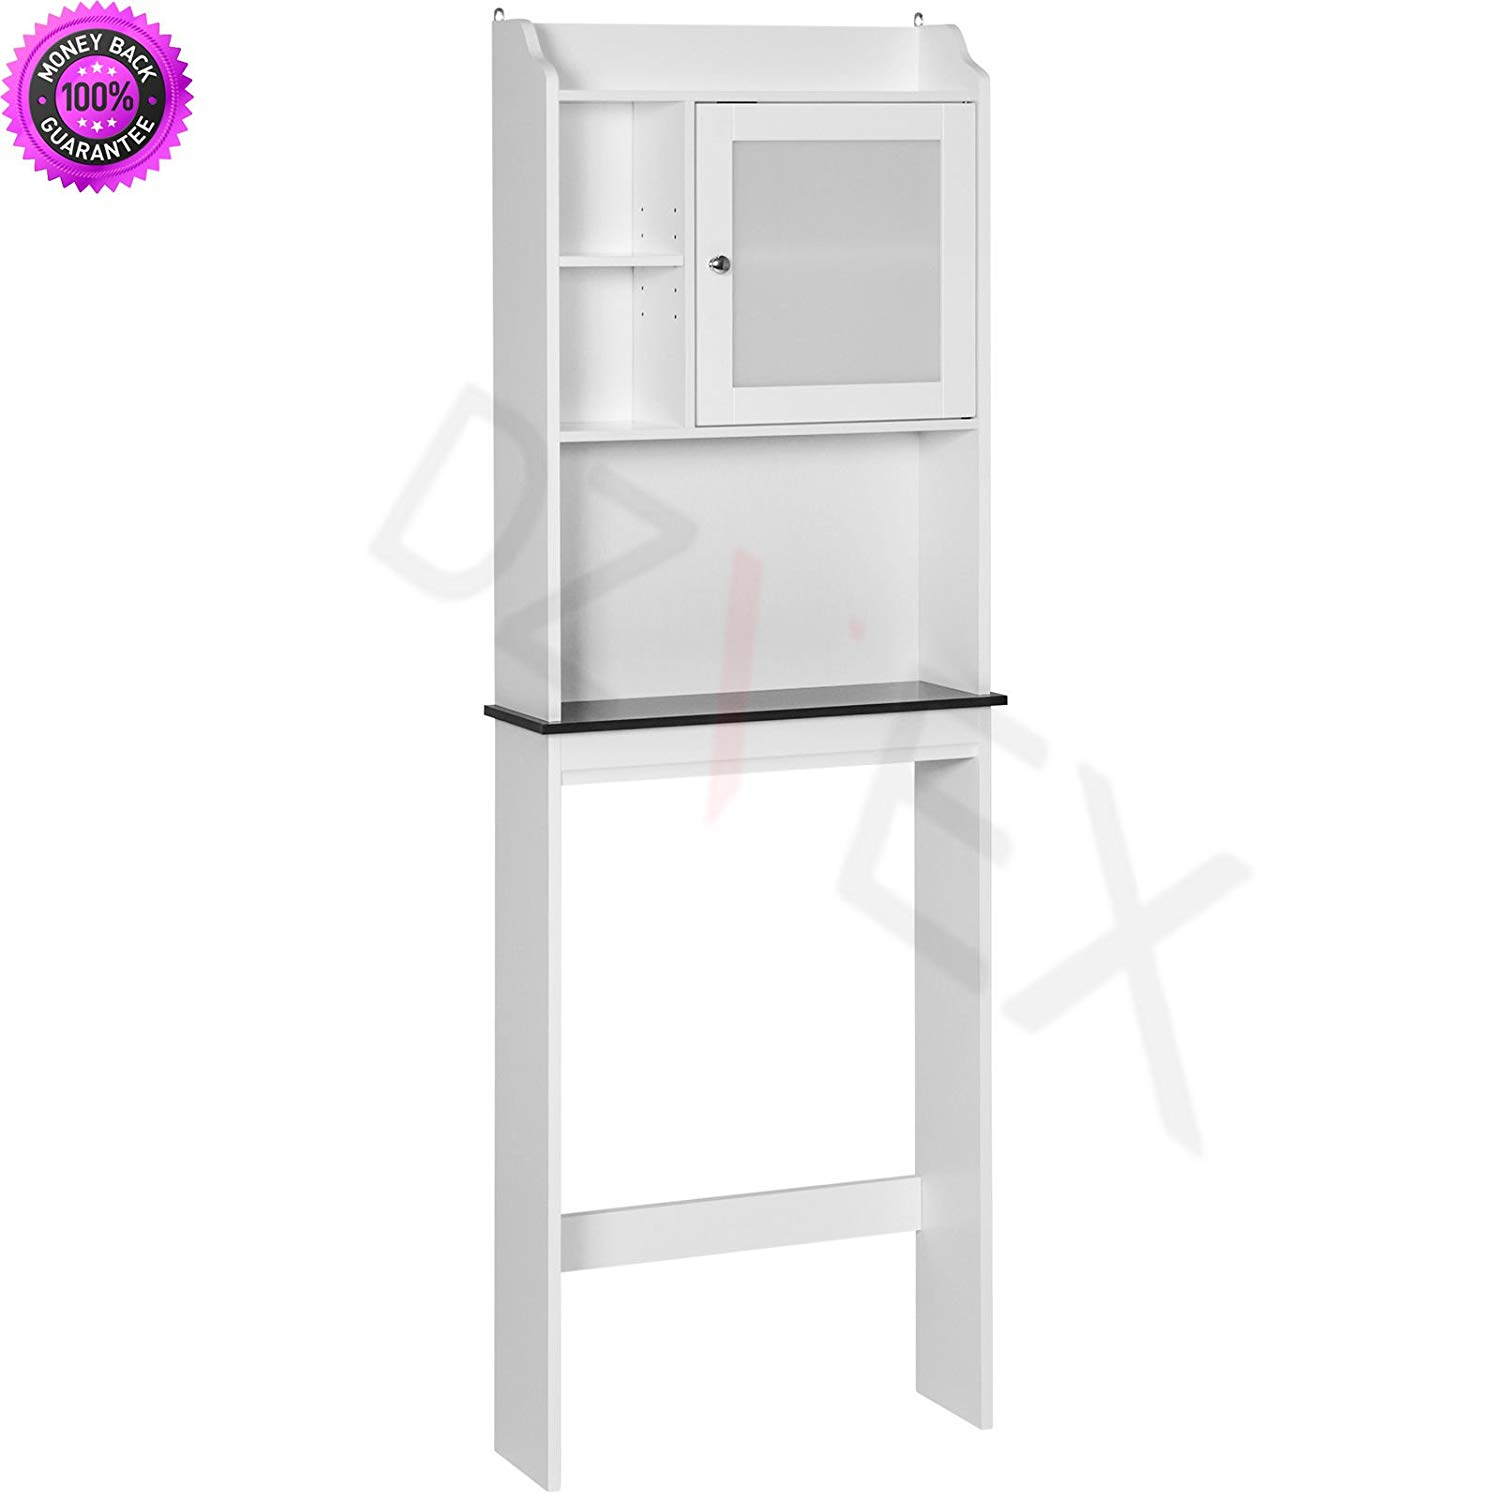 DzVeX Bathroom Over-the-Toilet Space Saver Storage Cabinet- White And shower caddy target pole shower caddy shower caddy bed bath and beyond corner shower caddy bathtub caddy portable shower caddy